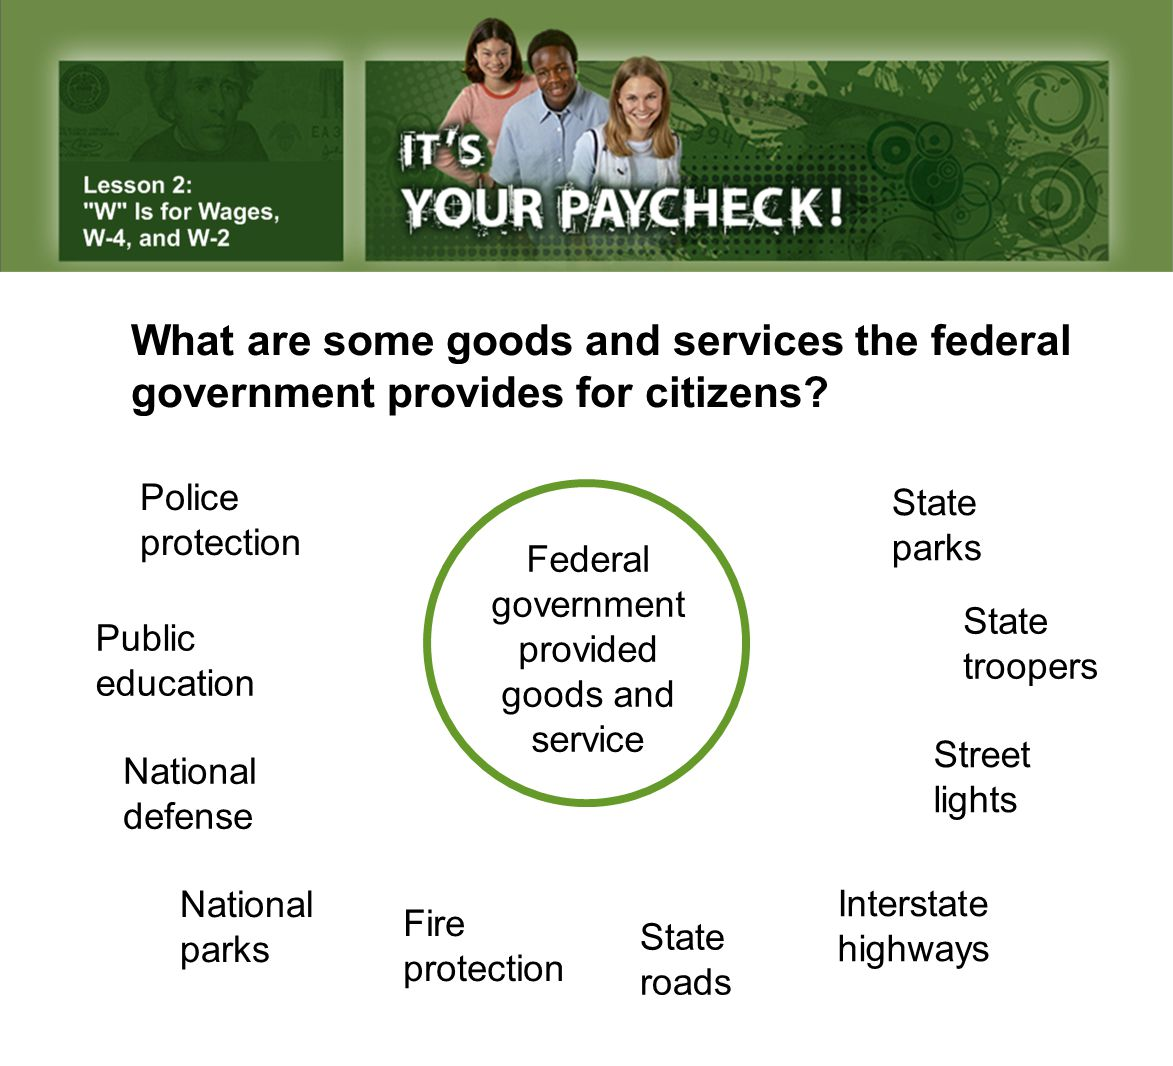 Federal government provided goods and service